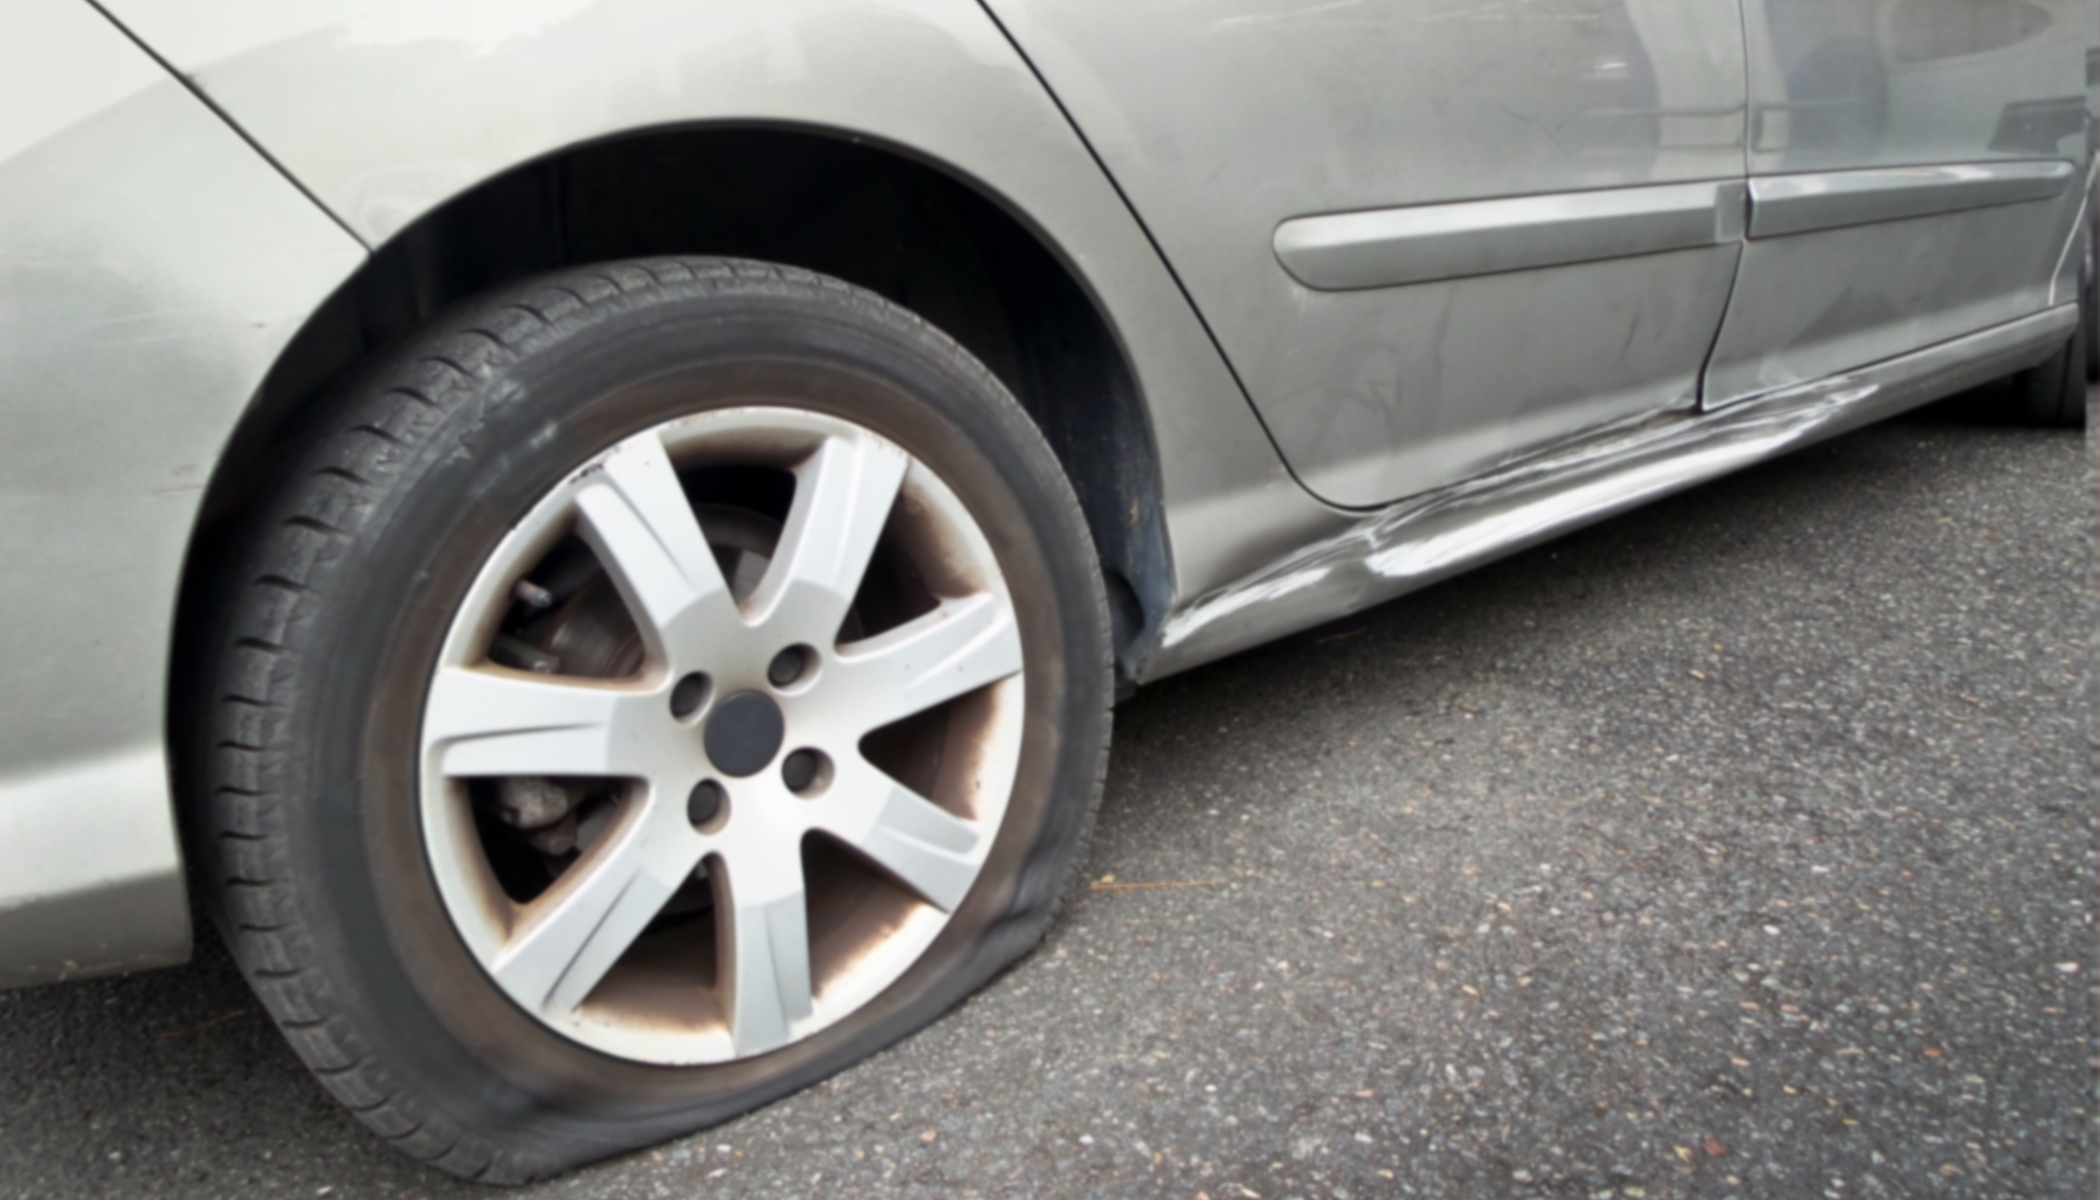 Good Samaritan Sees Woman Stranded With a Flat Tire on I-85, Stops and Gives Her a Spare